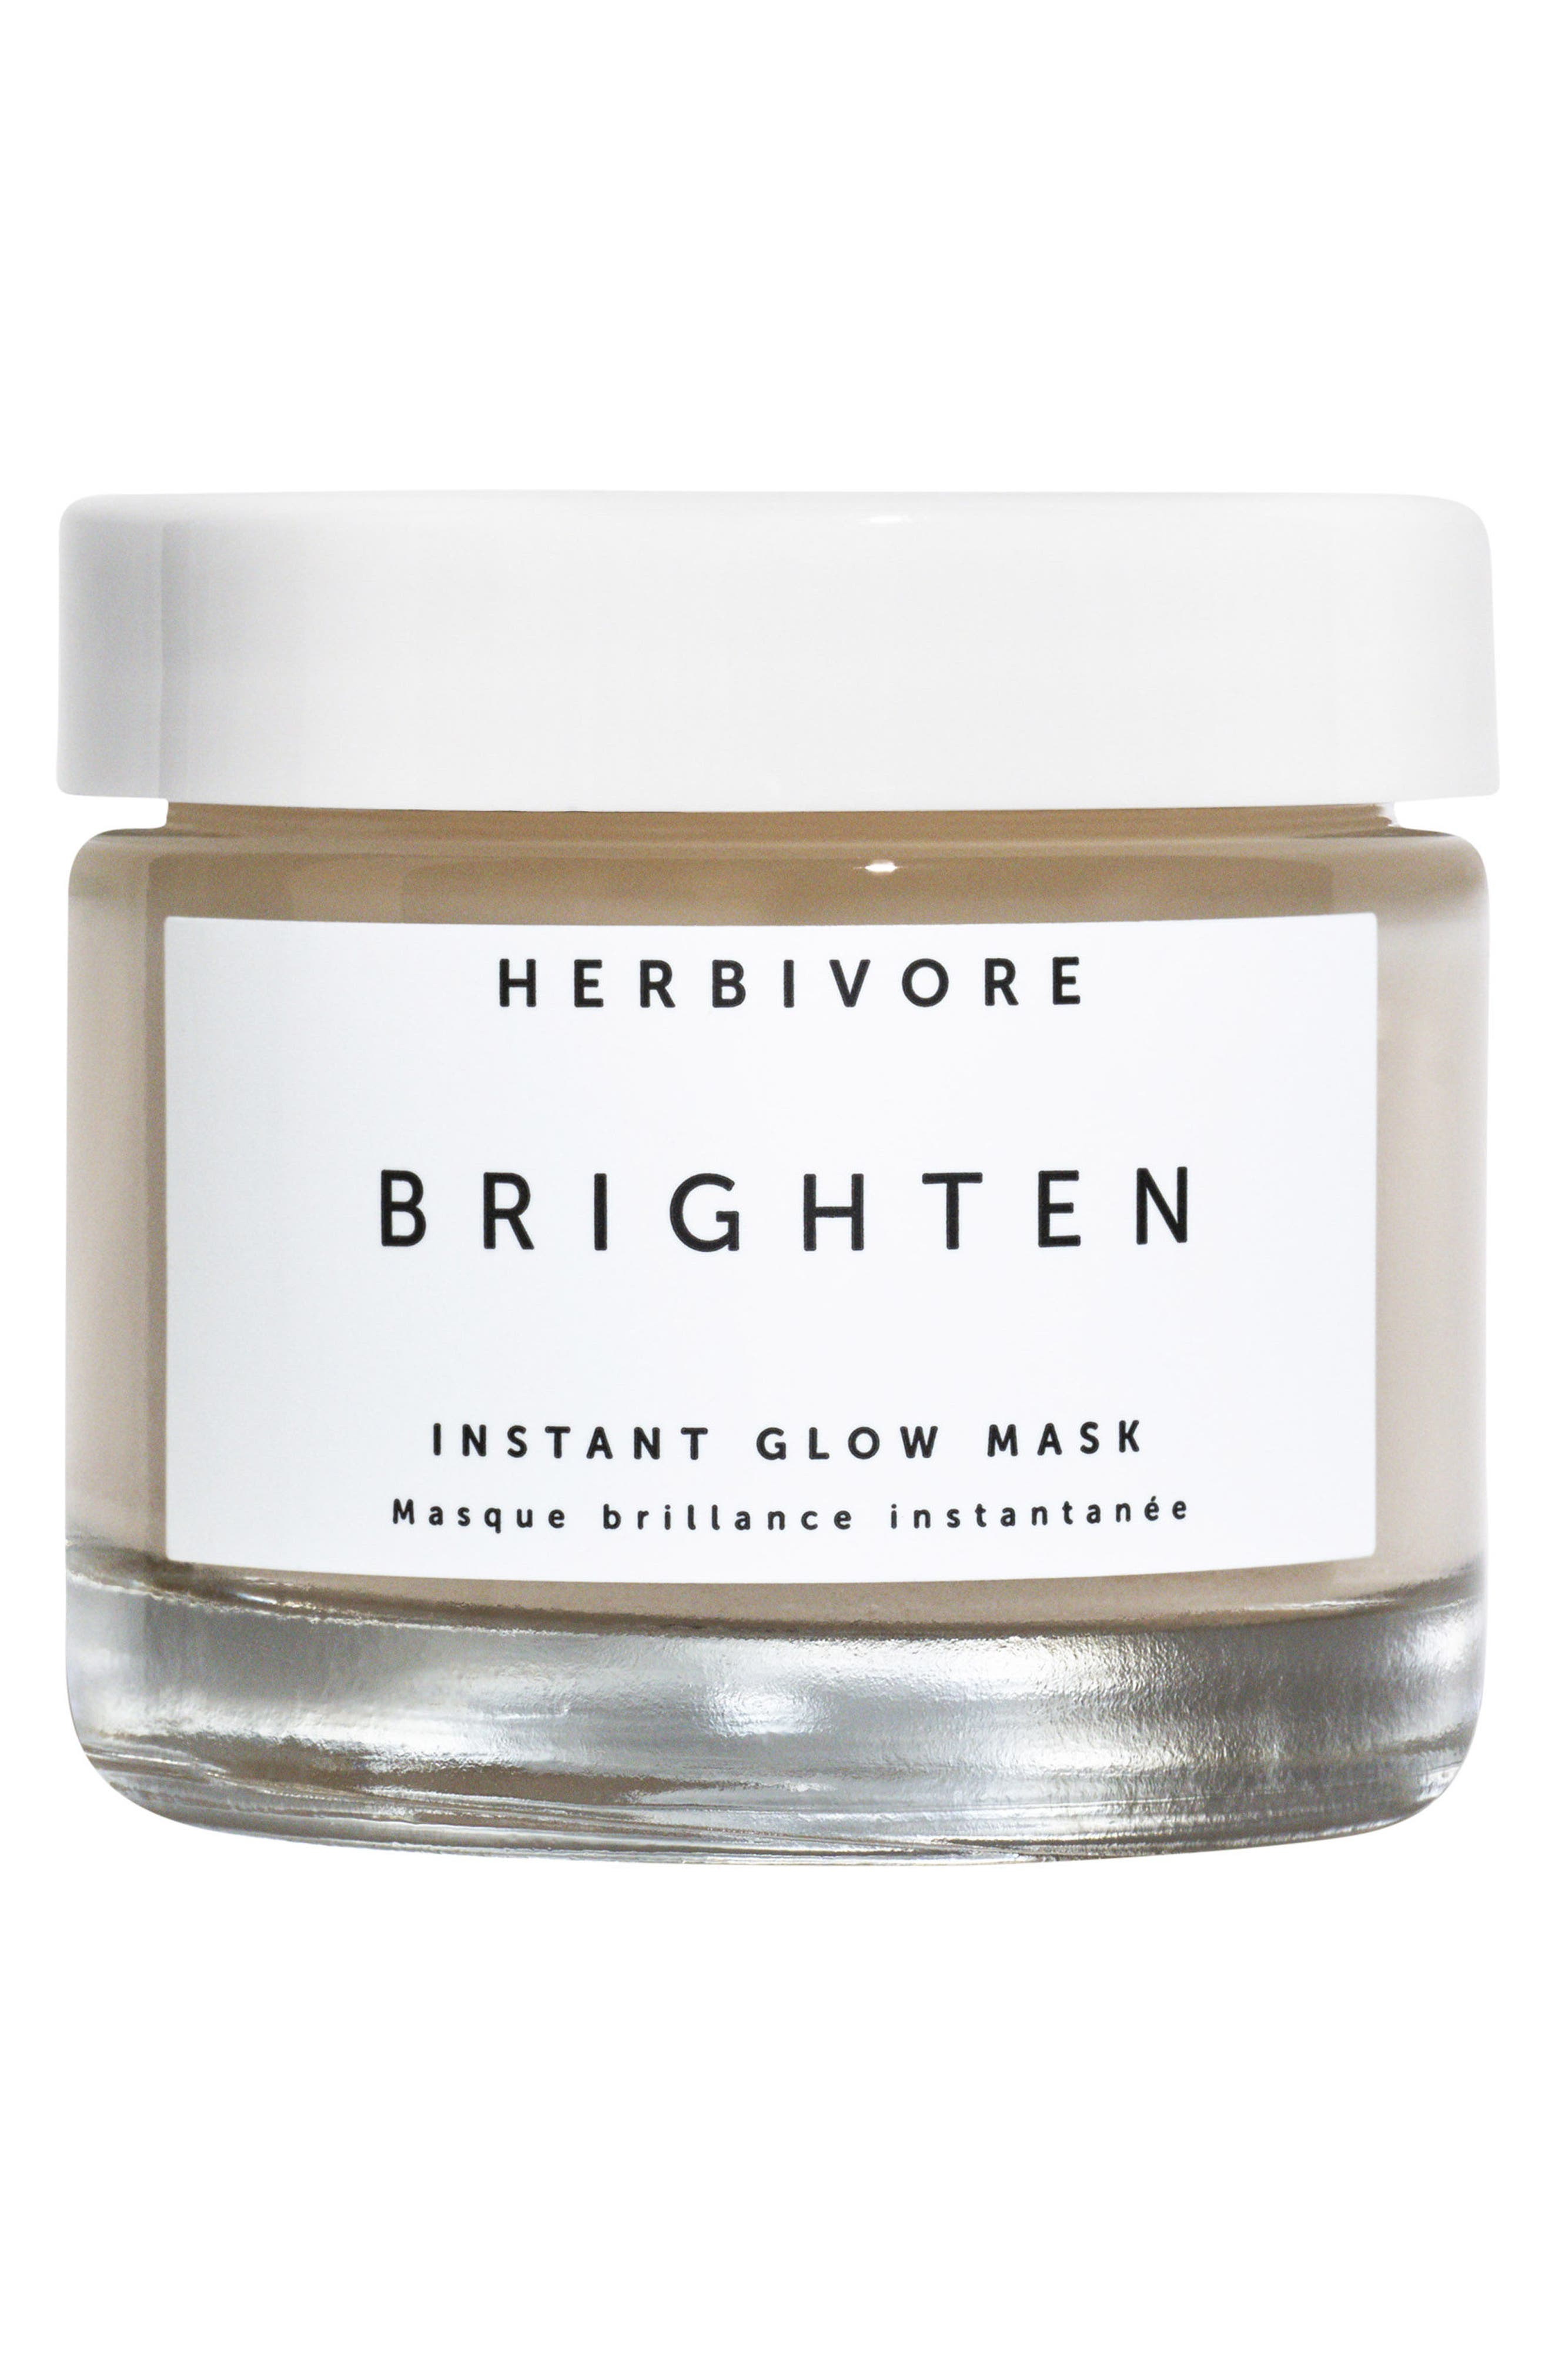 Brighten Pineapple Enzyme + Gemstone Instant Glow Mask,                             Main thumbnail 1, color,                             NO COLOR